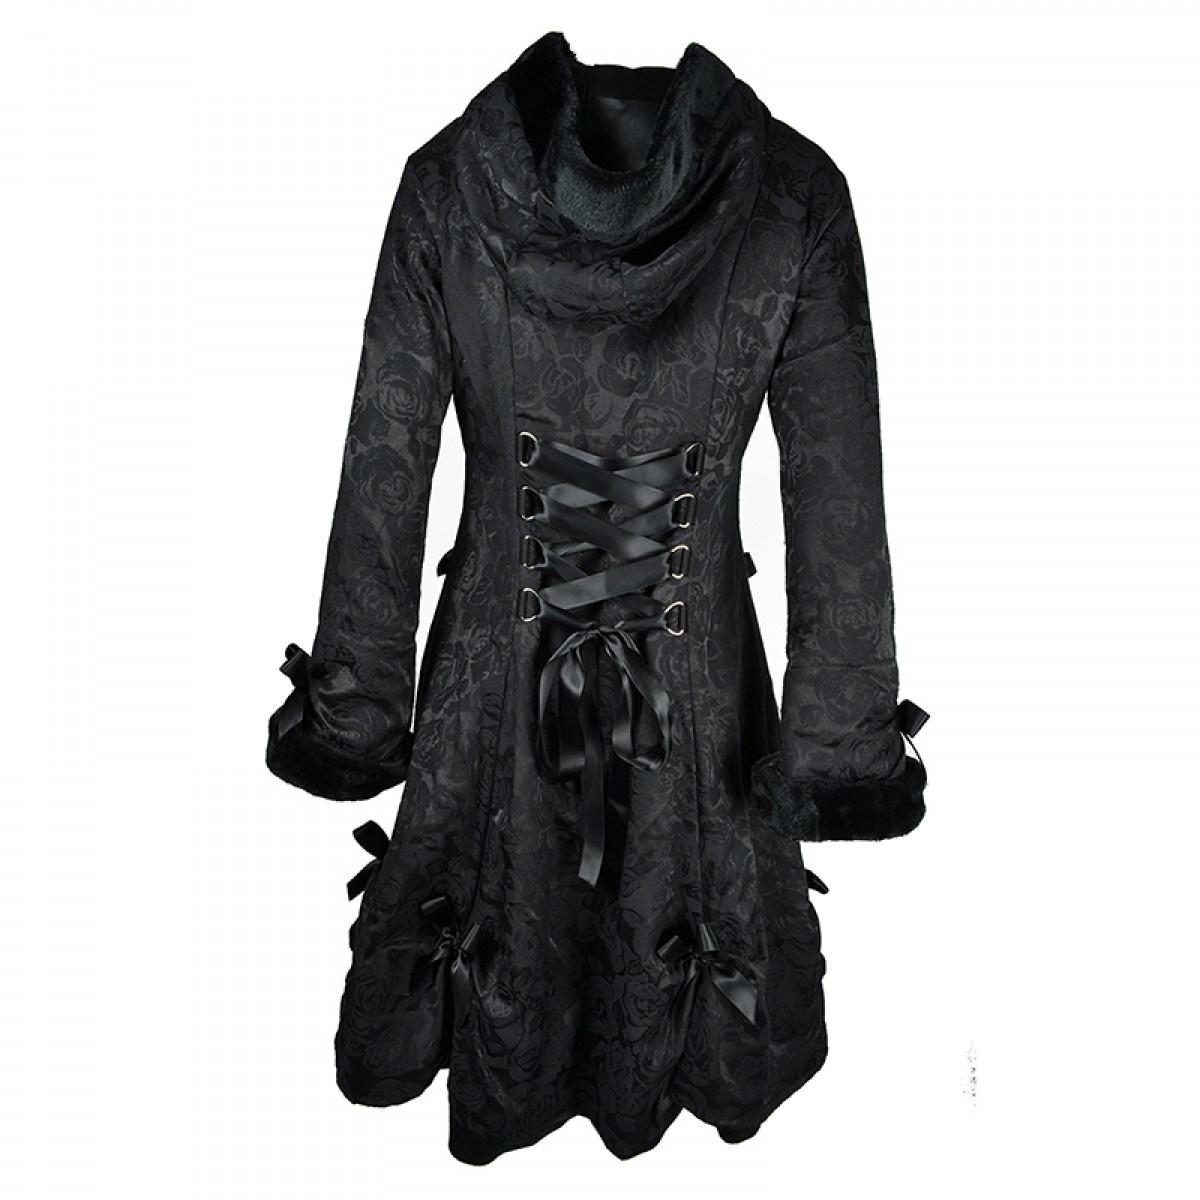 rebelsmarket_alice_coat_black_rose_poizen_industries_coats_5.jpg